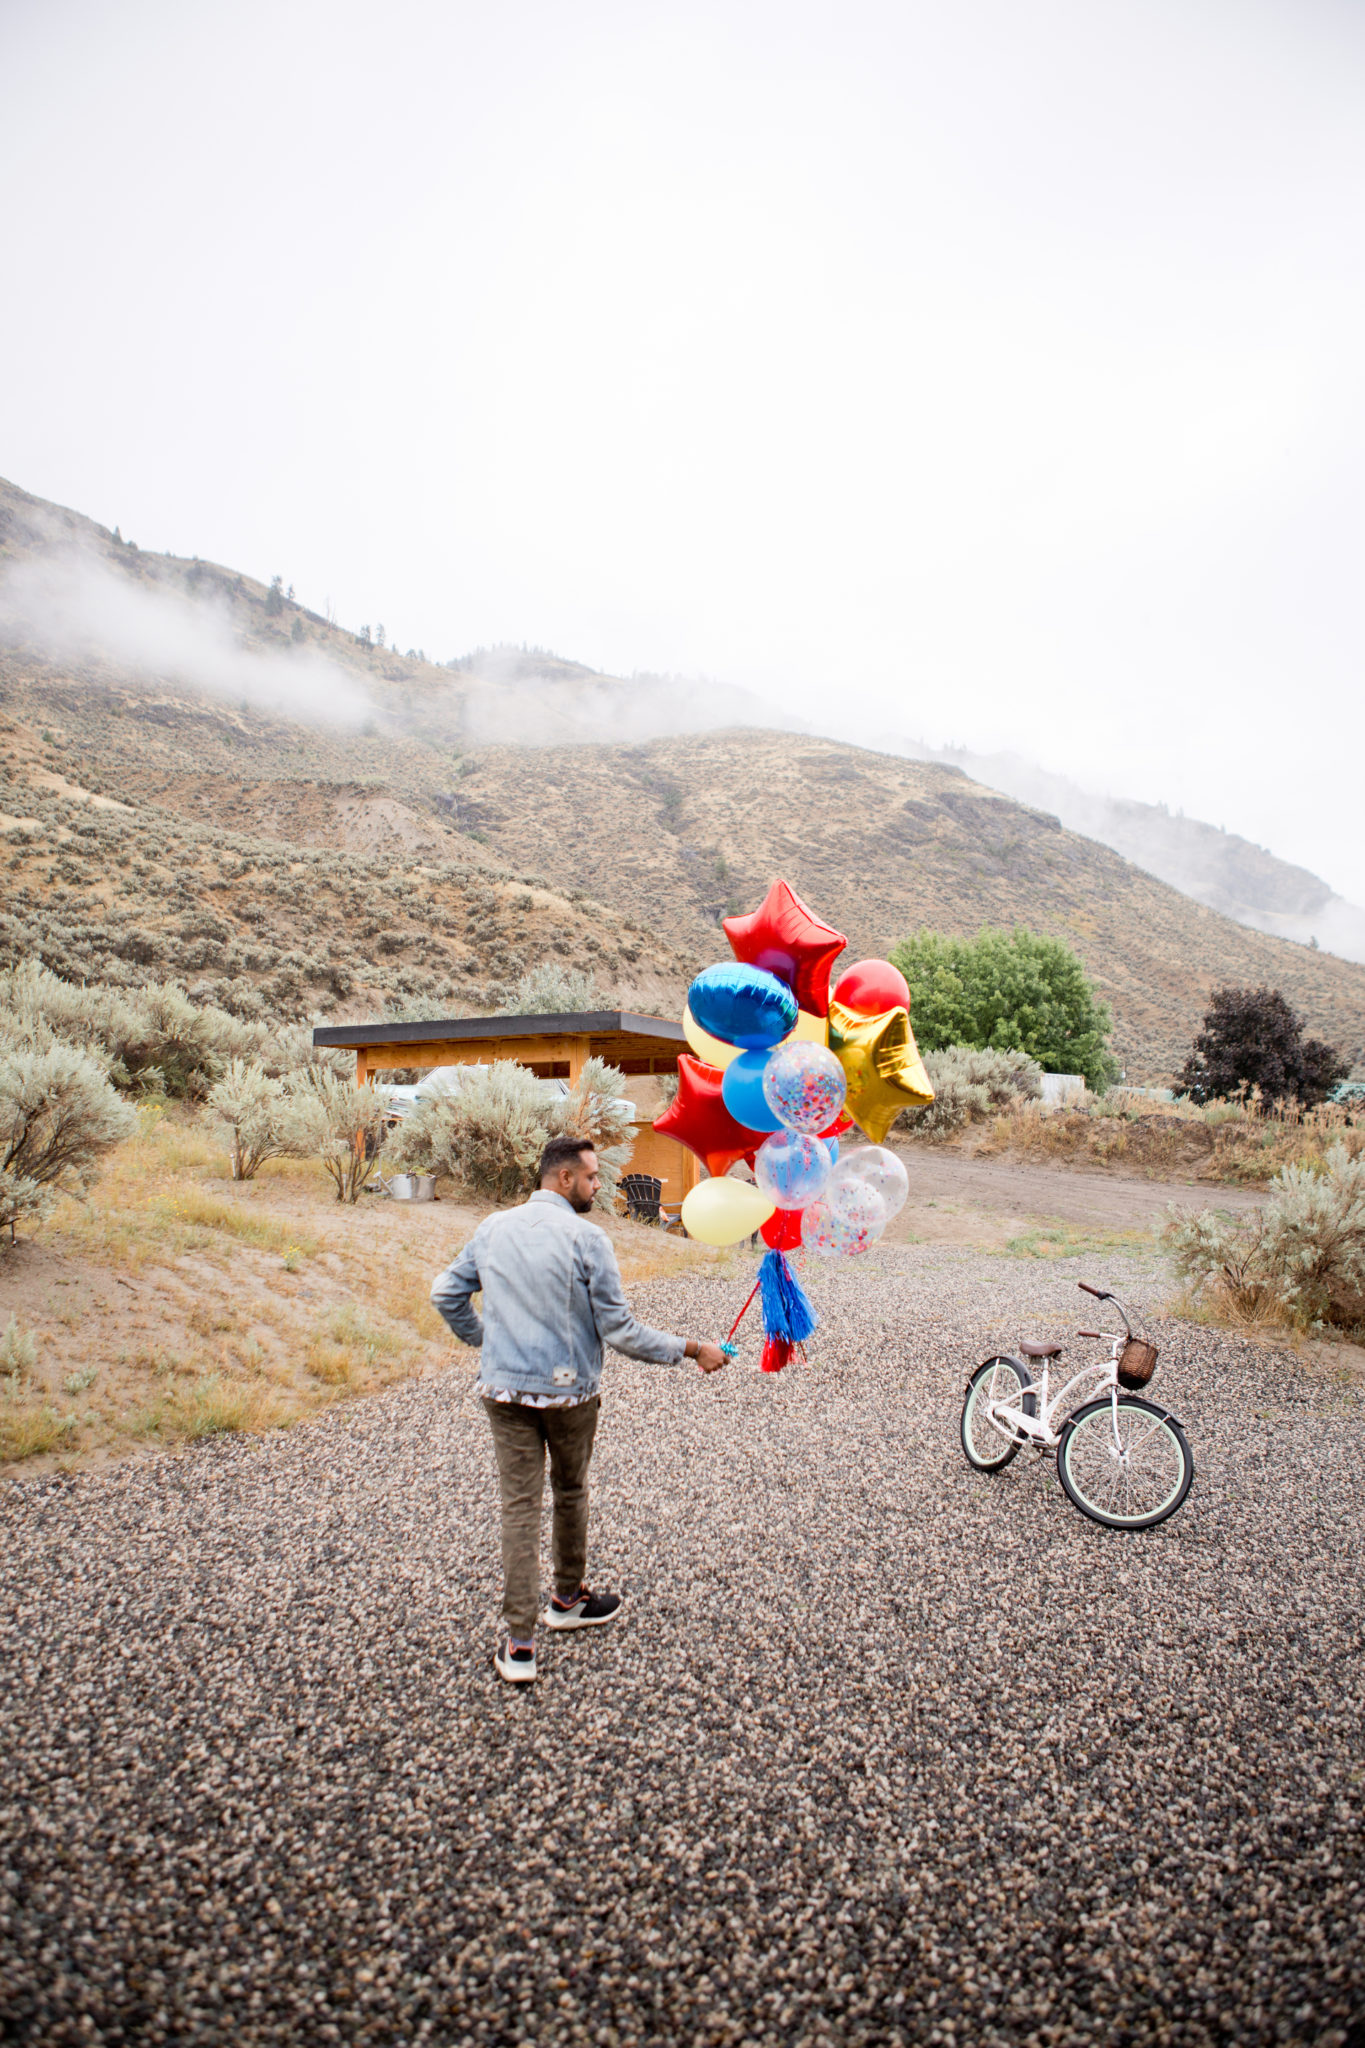 Tourism Kamloops - British Colombia - Blackbox Container Home - Balloons - Birthday - Party - Sultan Sandur